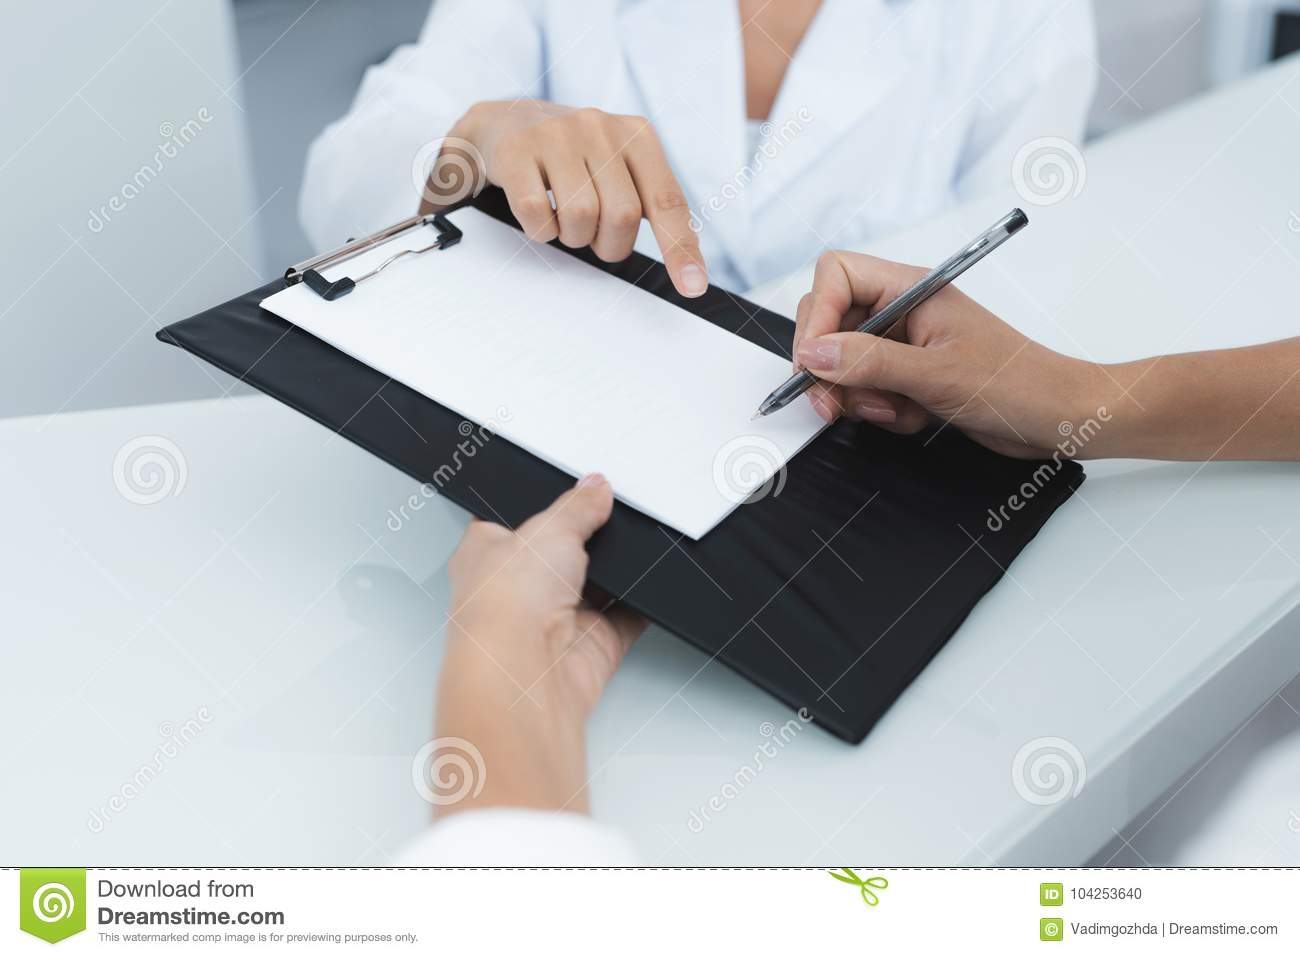 Close up. The secretary in a medical clinic helps the patient complete the necessary forms before starting treatment.